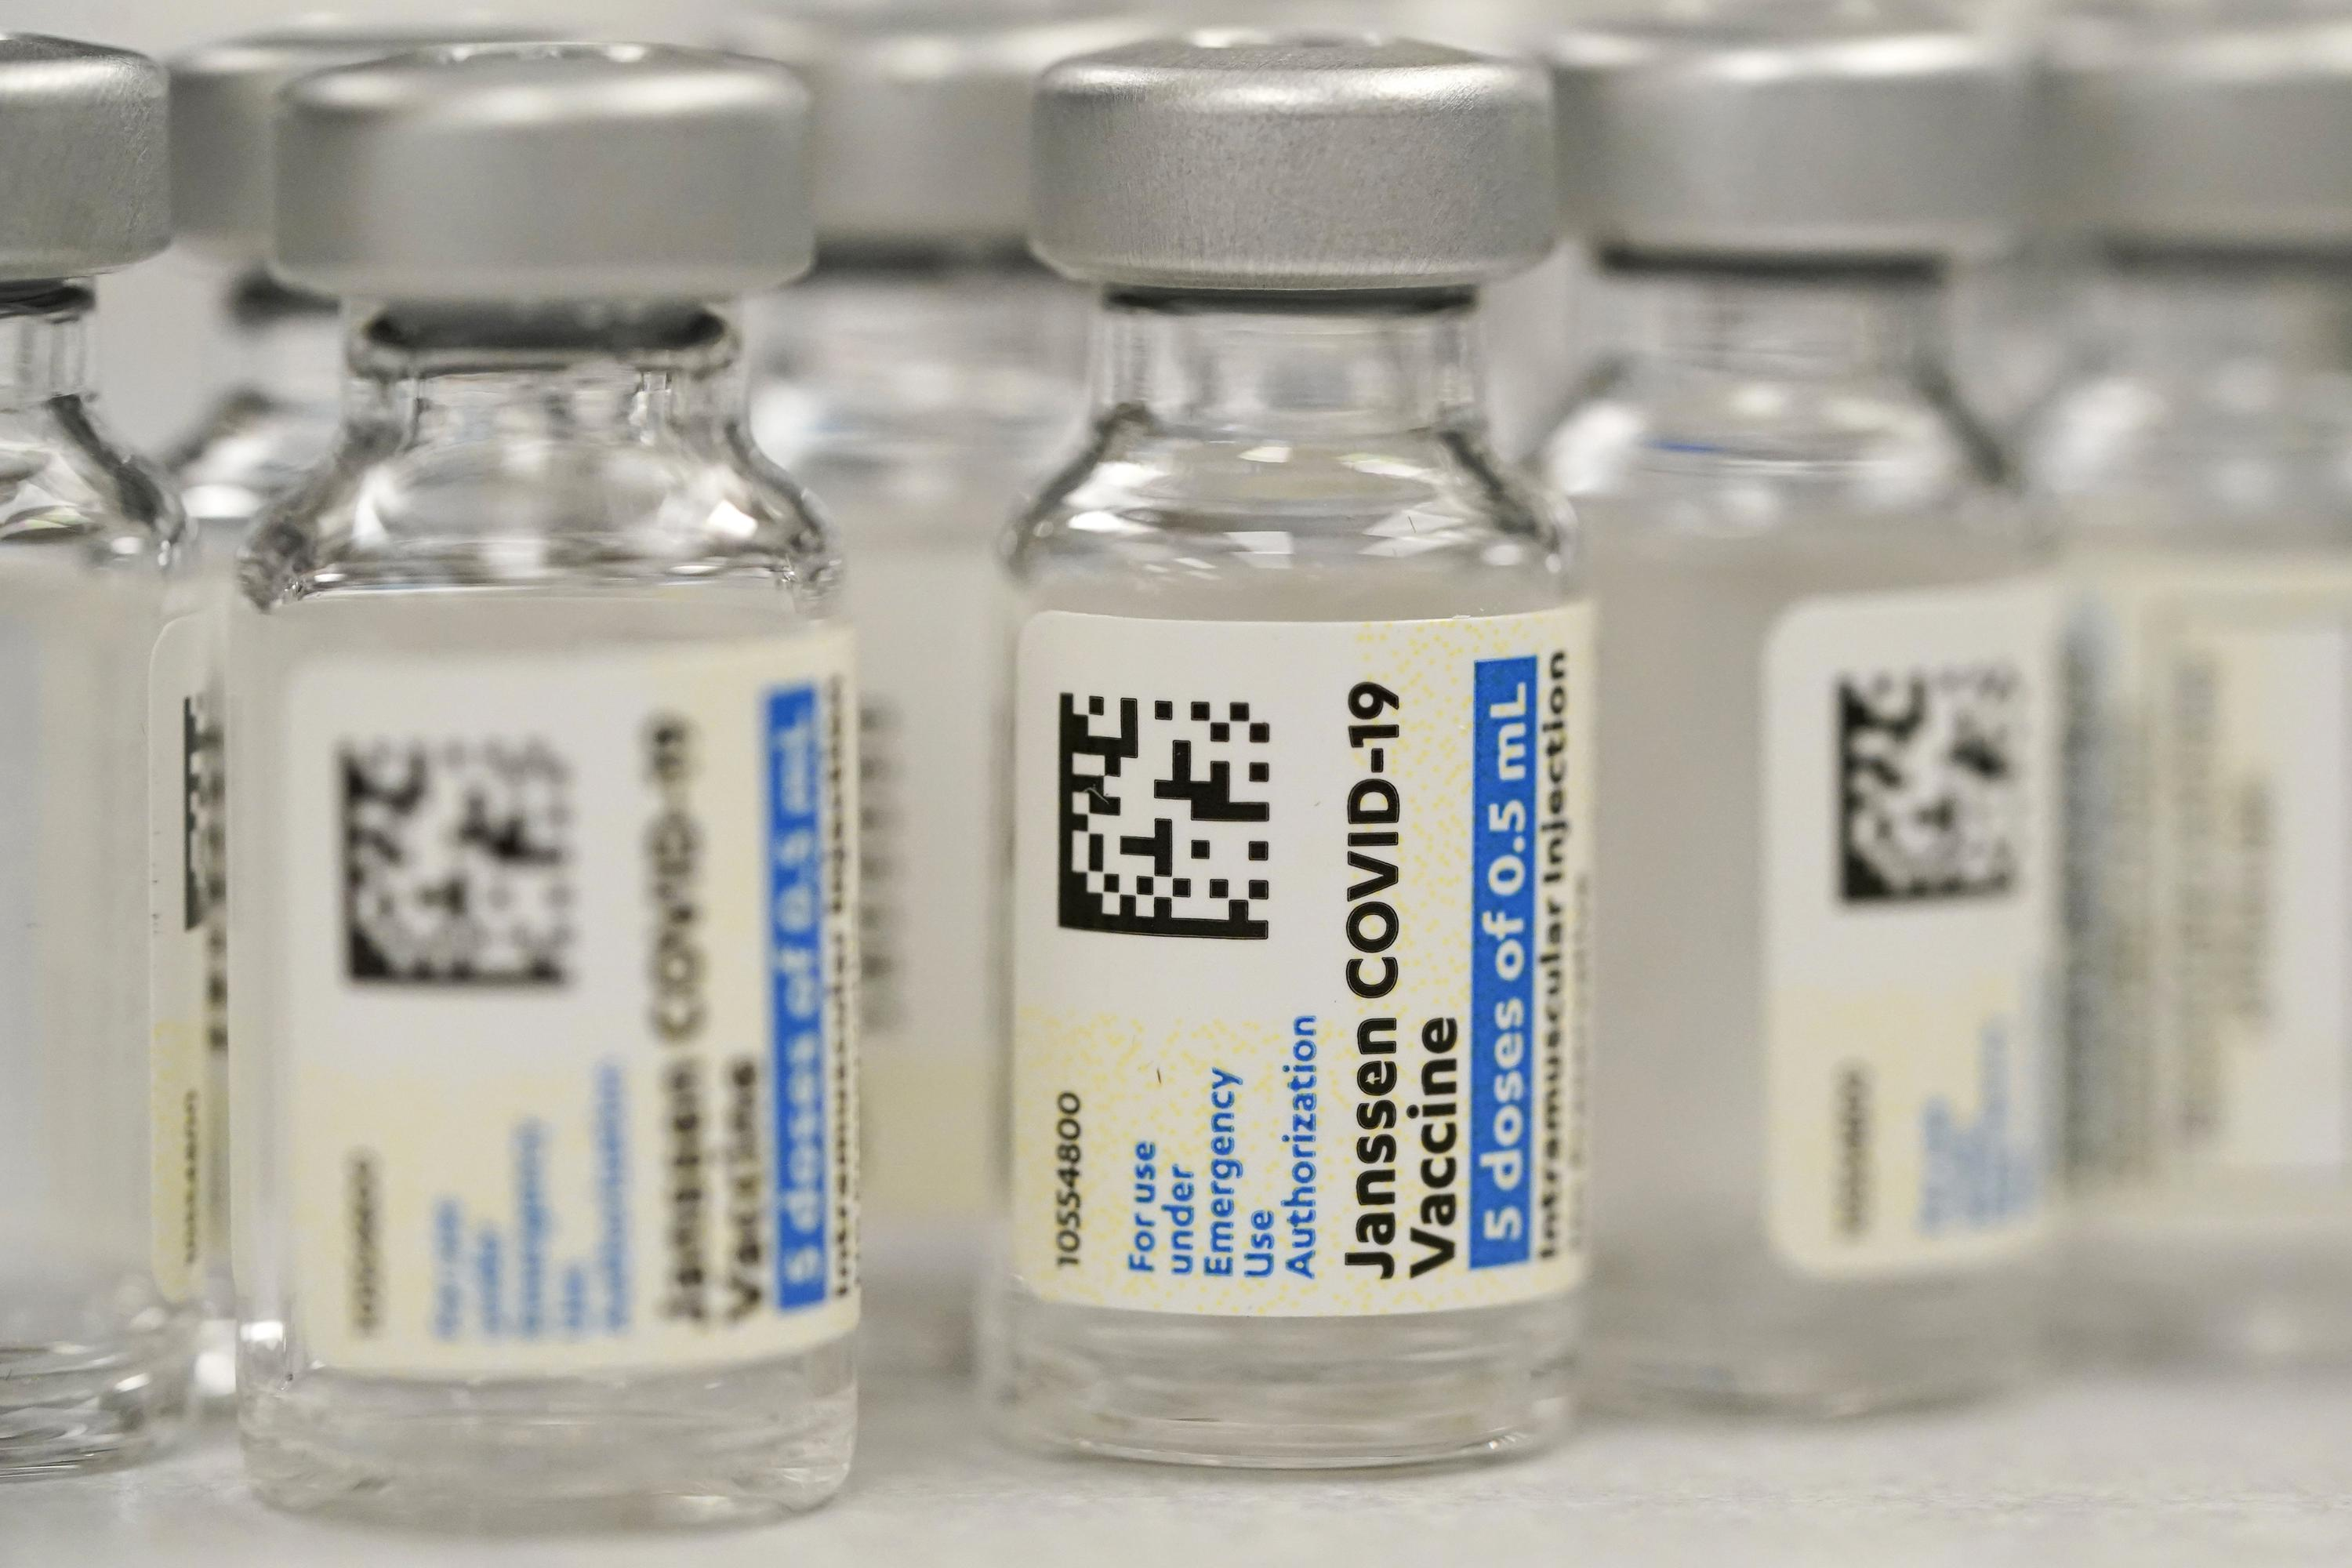 Large hospital system with 48K workers in New York mandates COVID vaccine, stirring debate about other businesses doing it